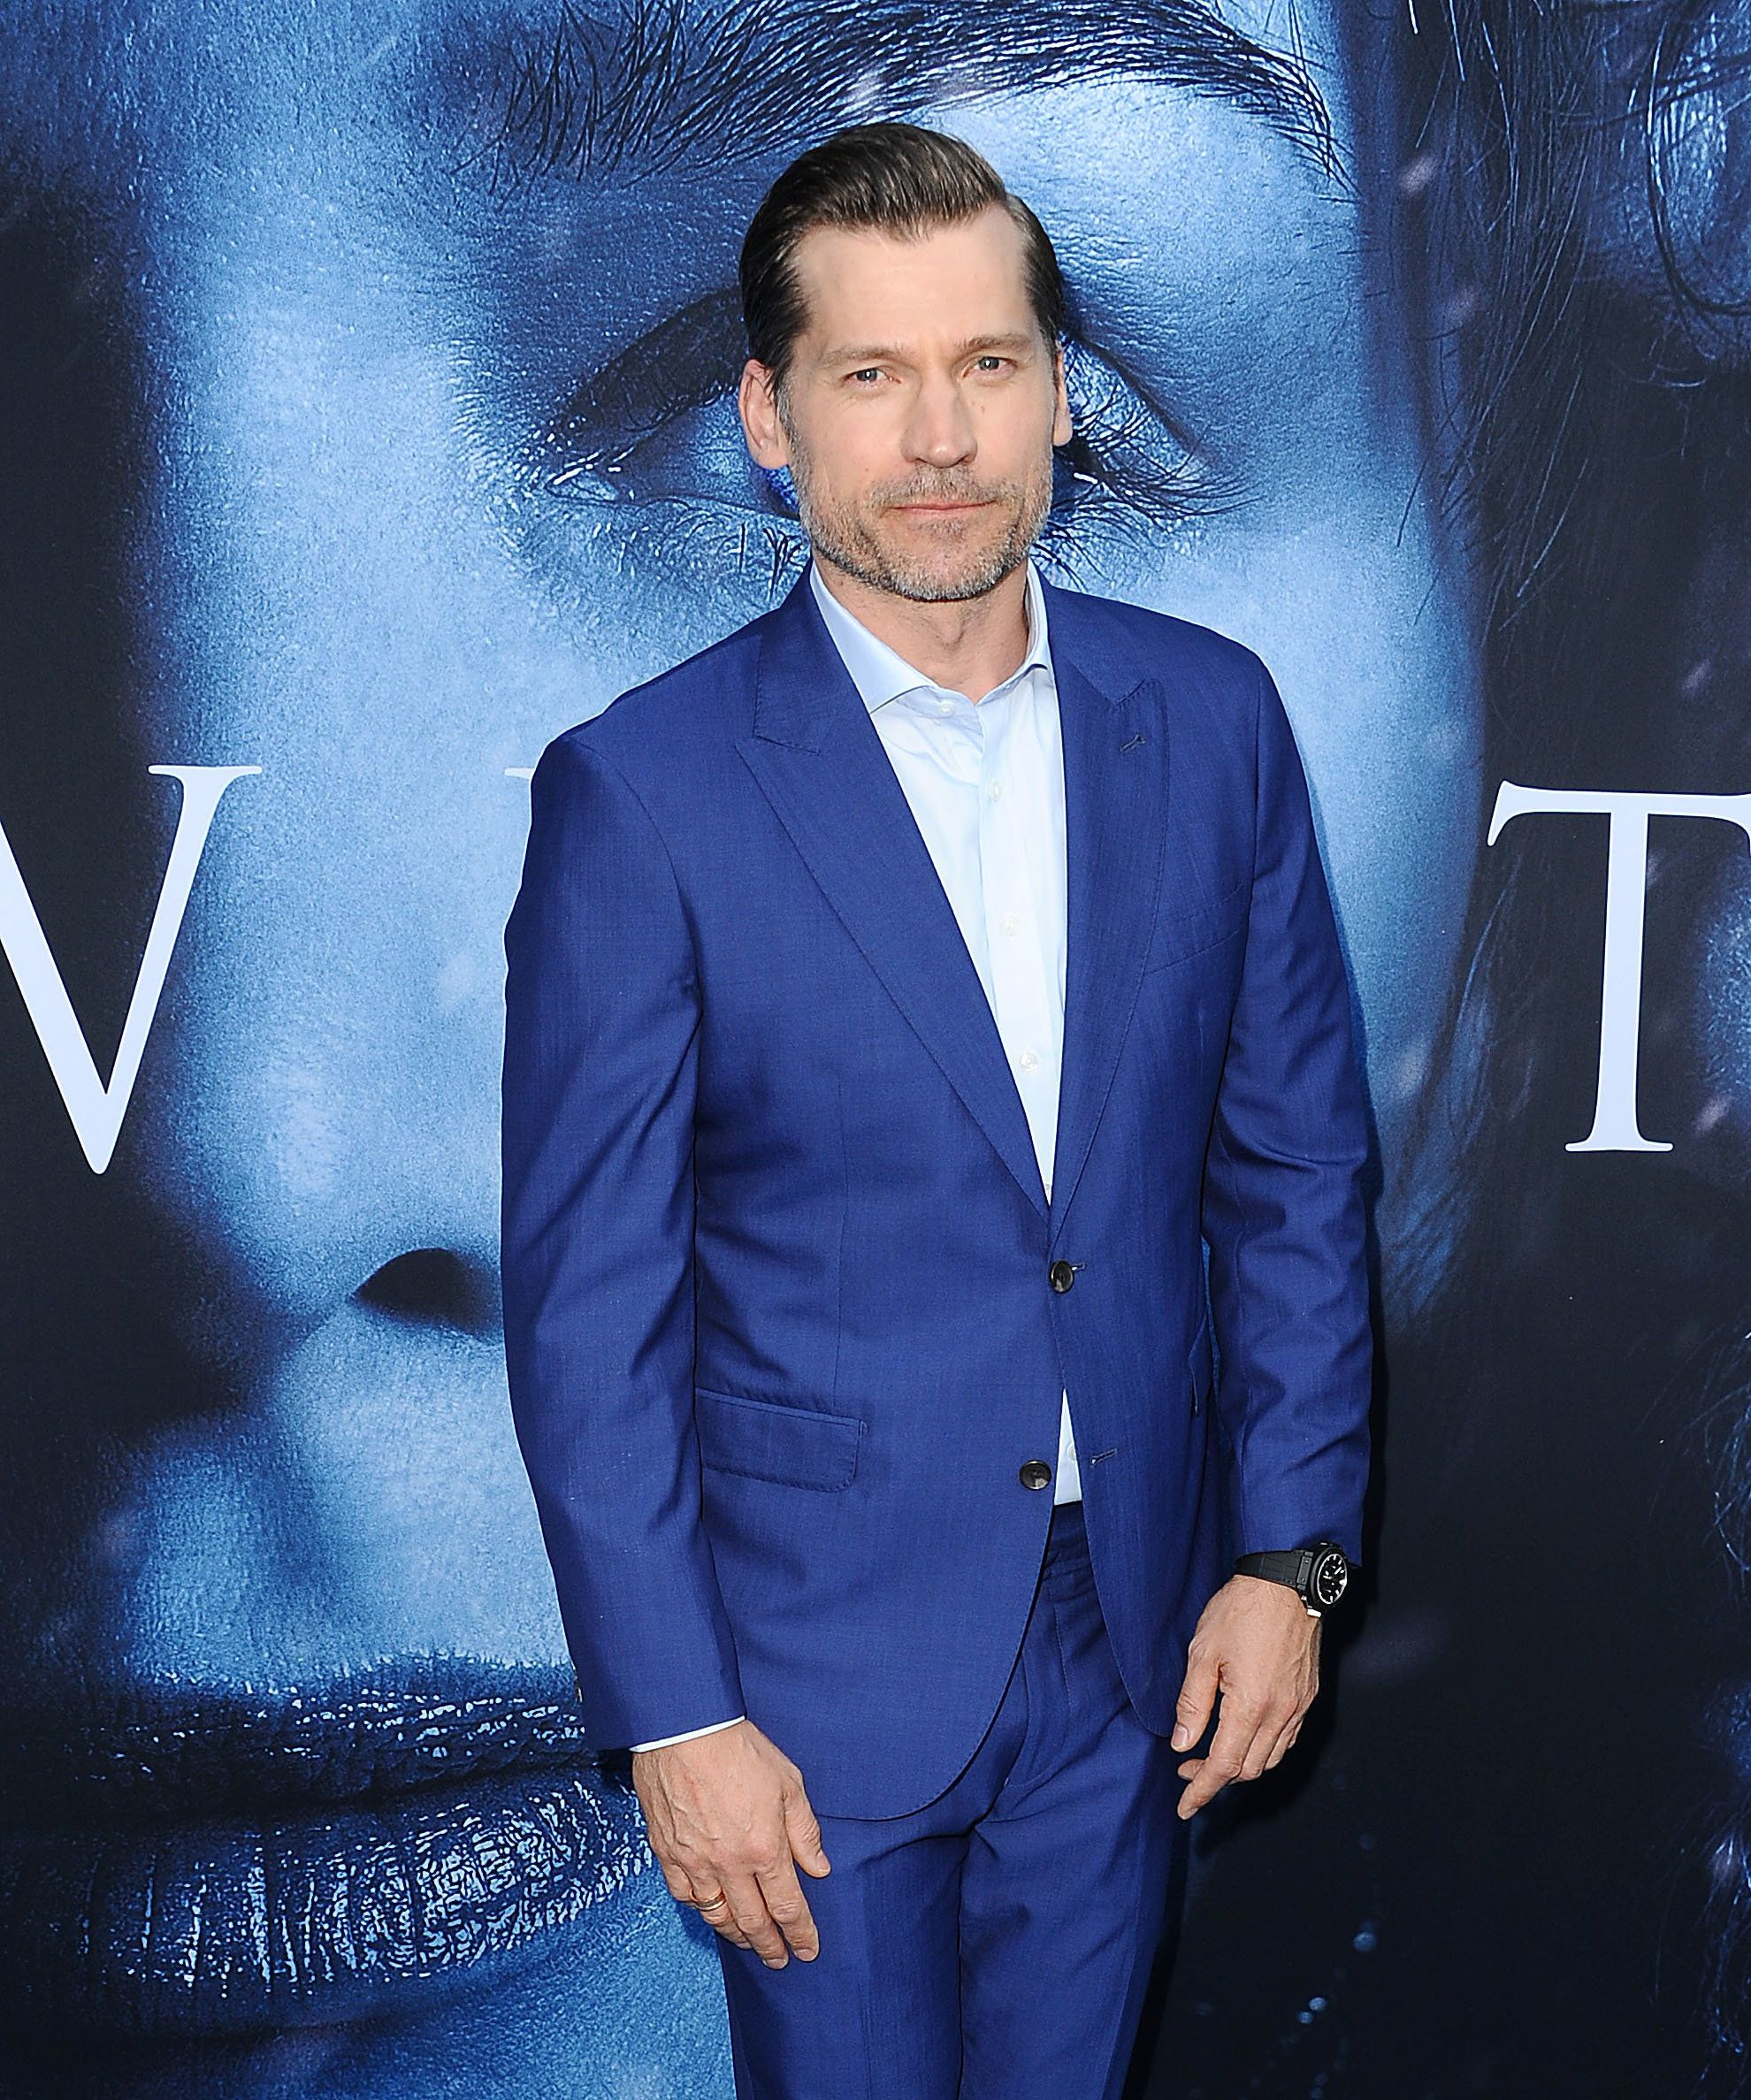 LOS ANGELES, CA - JULY 12:  Actor Nikolaj Coster-Waldau attends the season 7 premiere of 'Game Of Thrones' at Walt Disney Concert Hall on July 12, 2017 in Los Angeles, California.  (Photo by Jason LaVeris/FilmMagic)